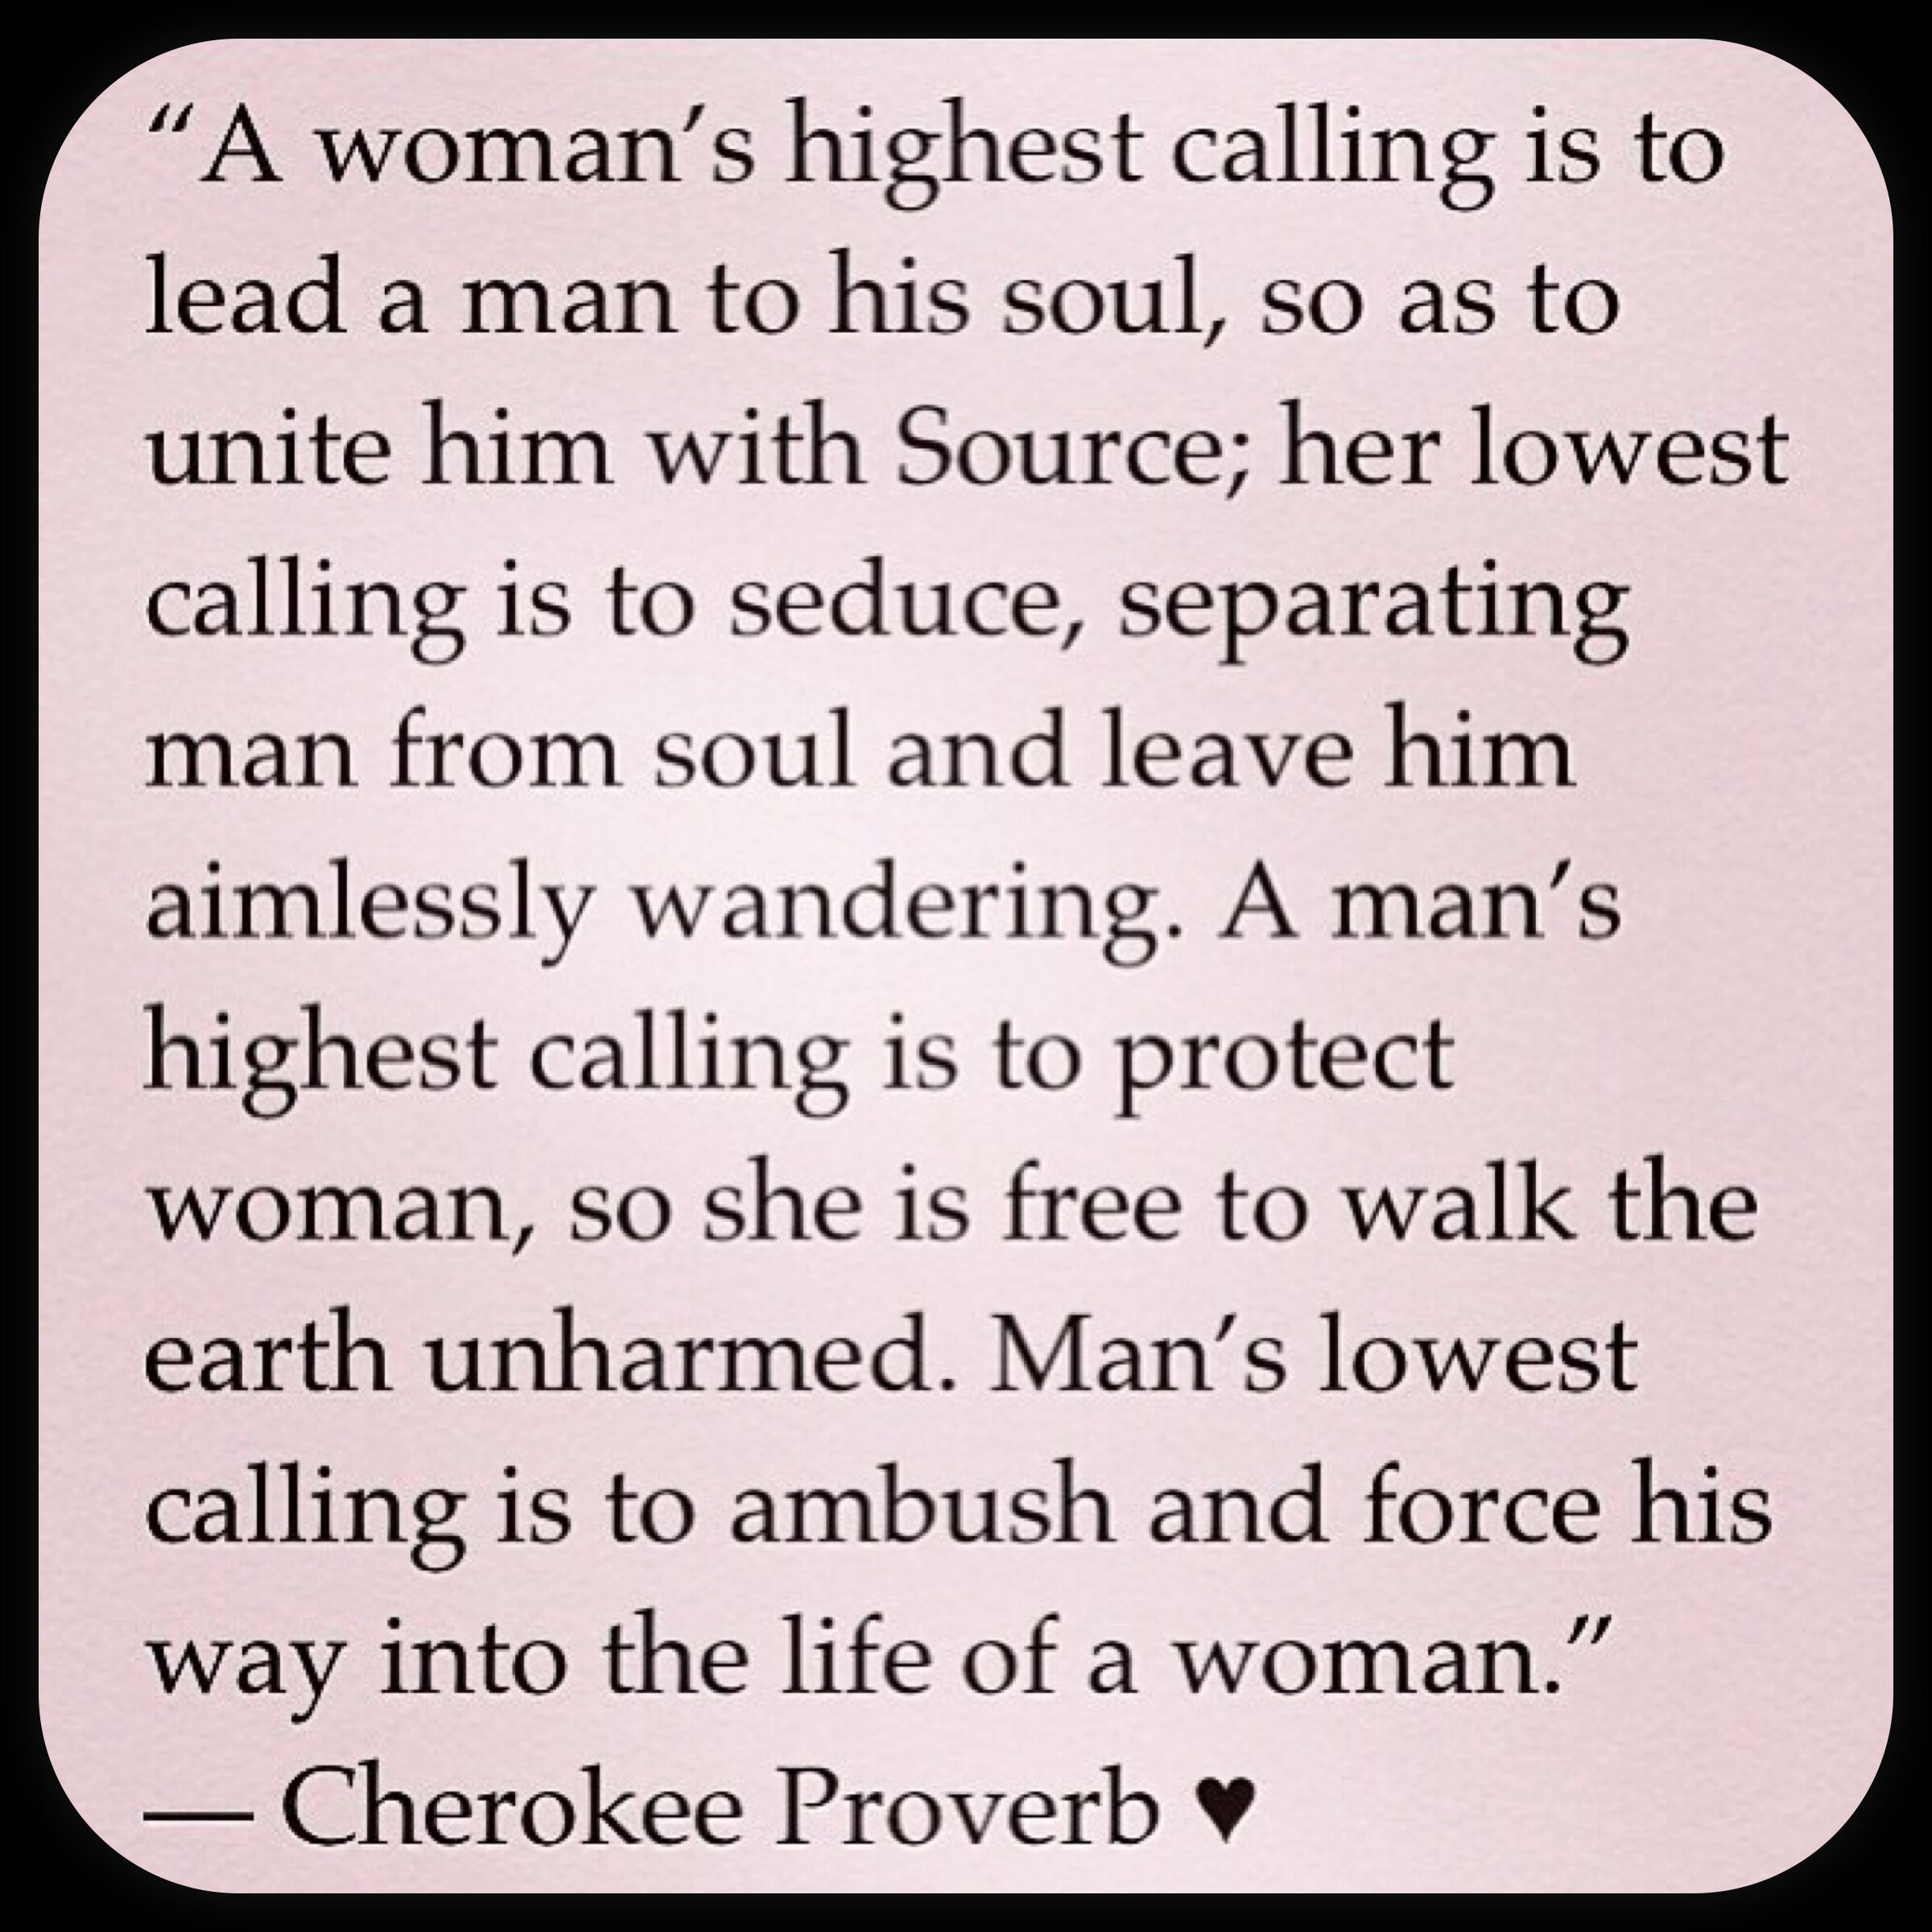 If your woman isn't a revolutionary, she will make you a slave.